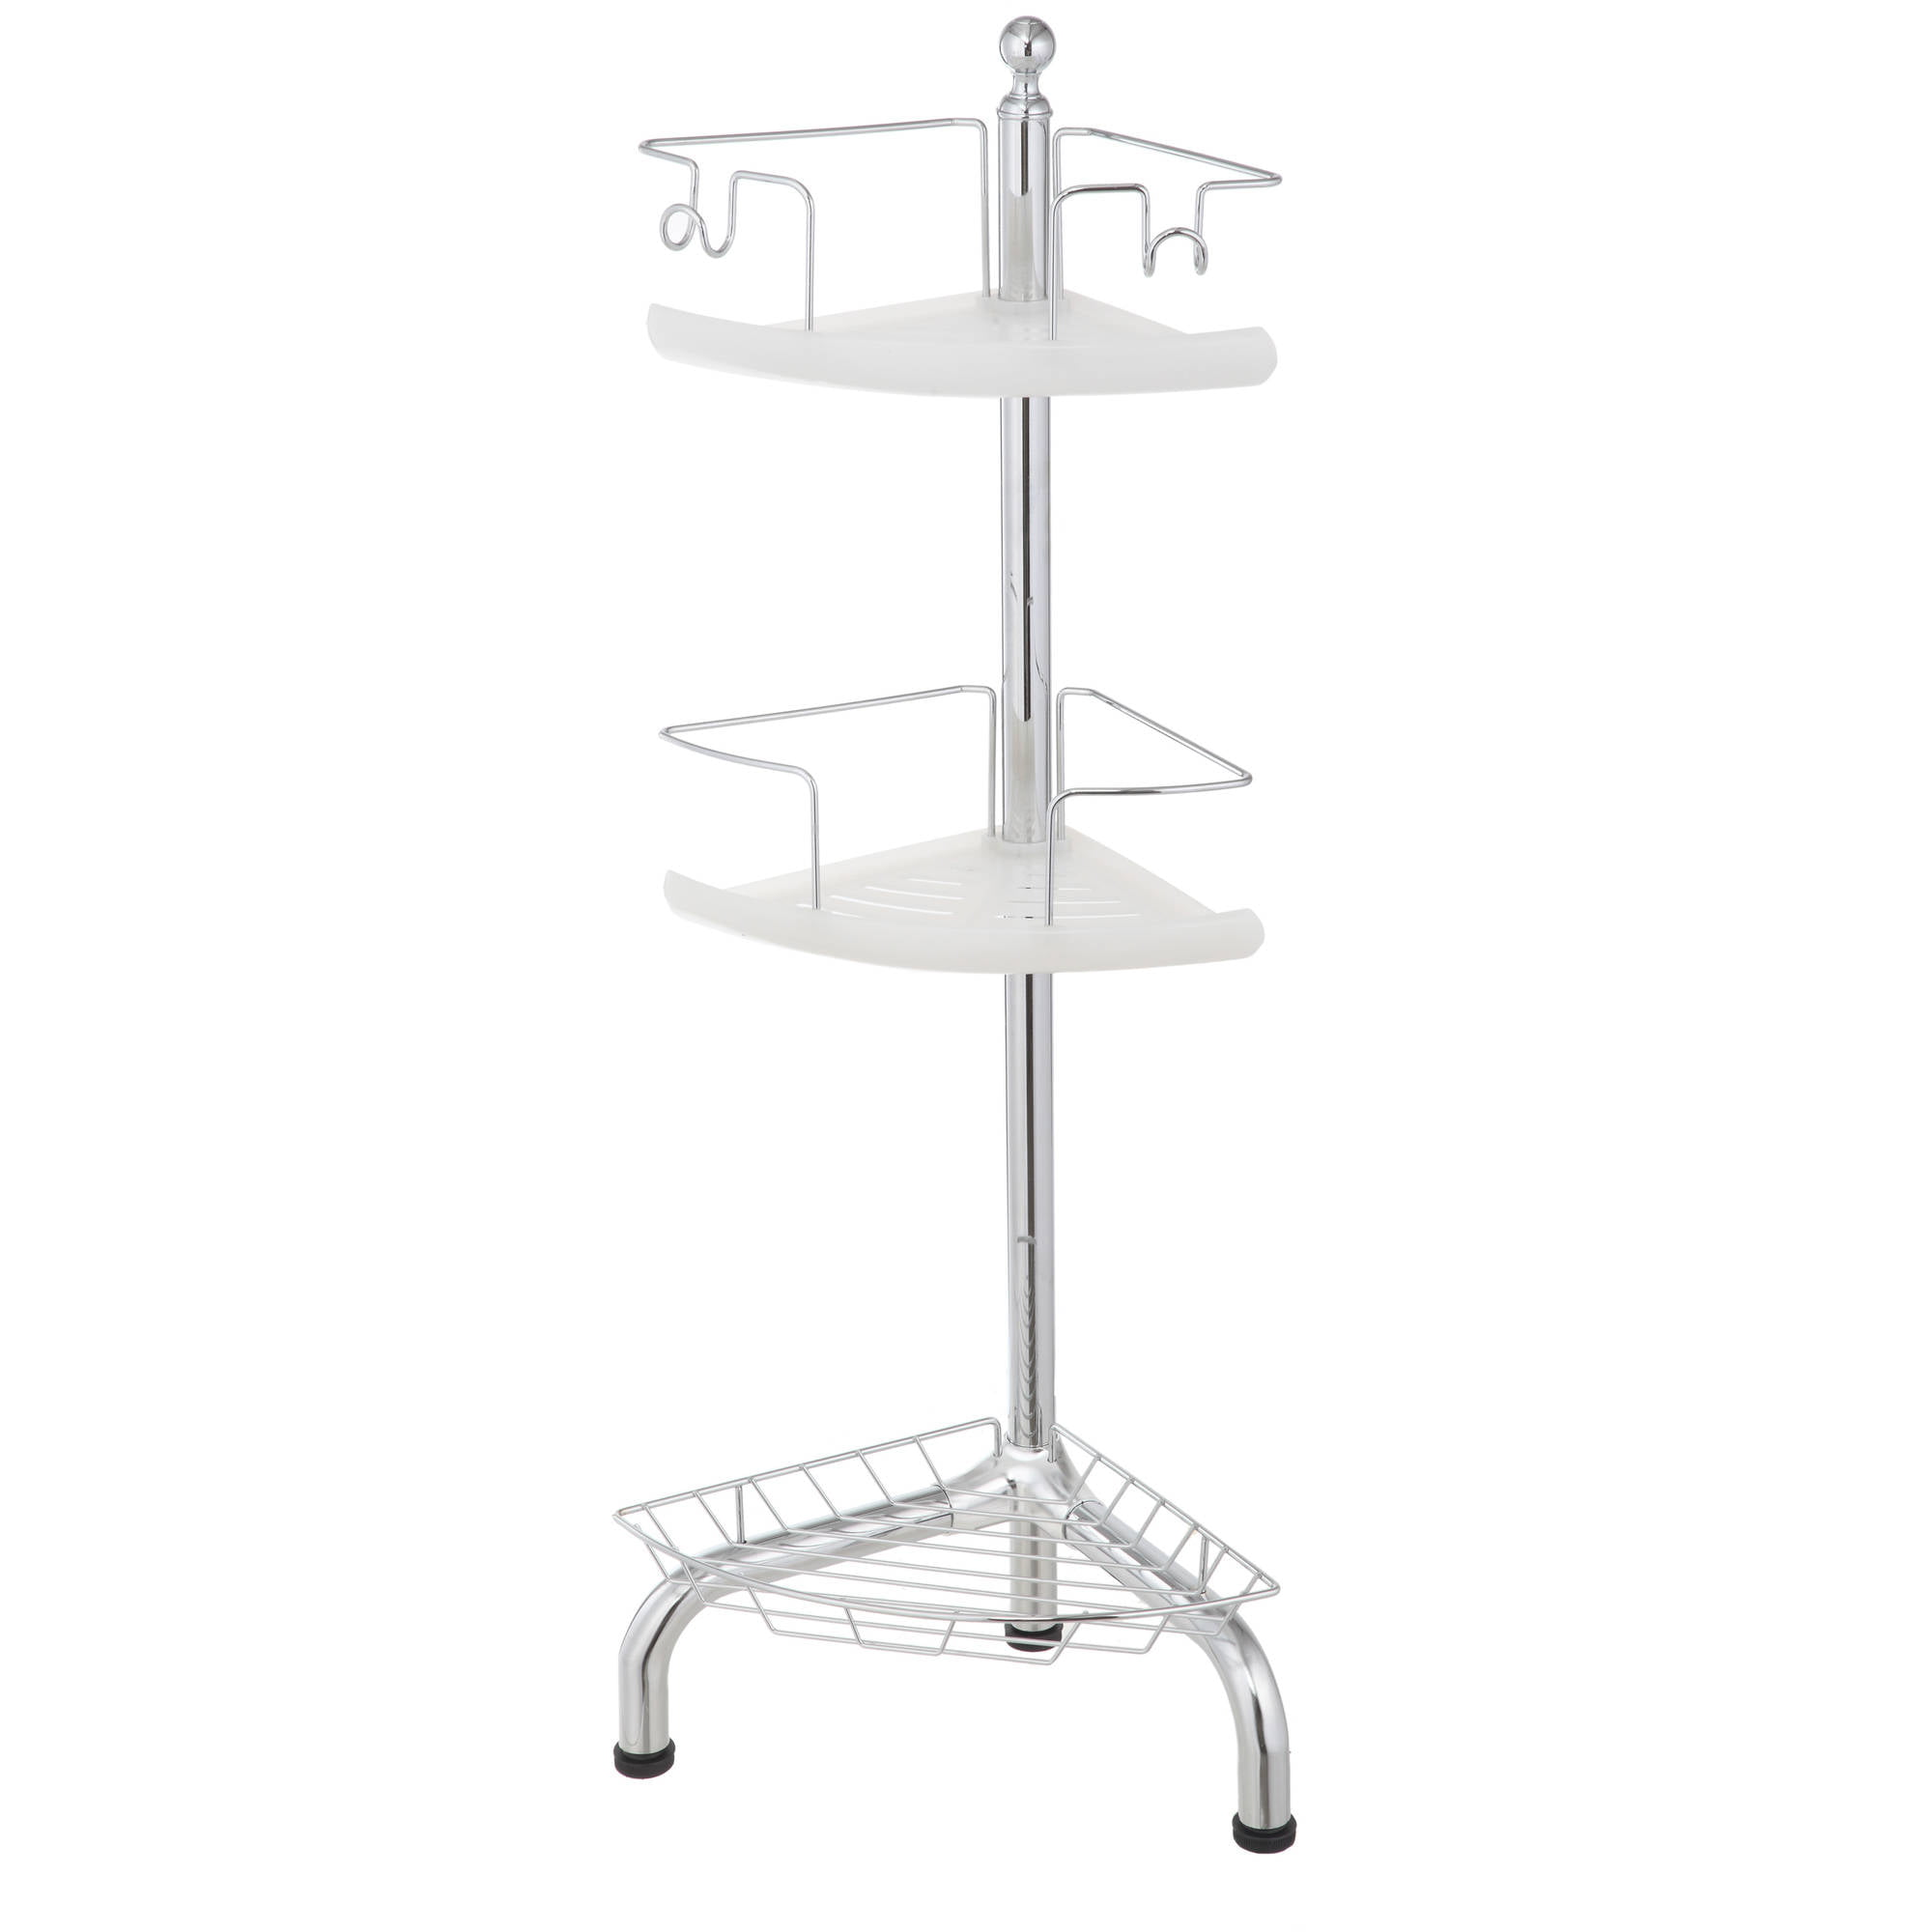 3-Tier Bathroom Adjustable standing Corner Shower Caddy Organizer ...